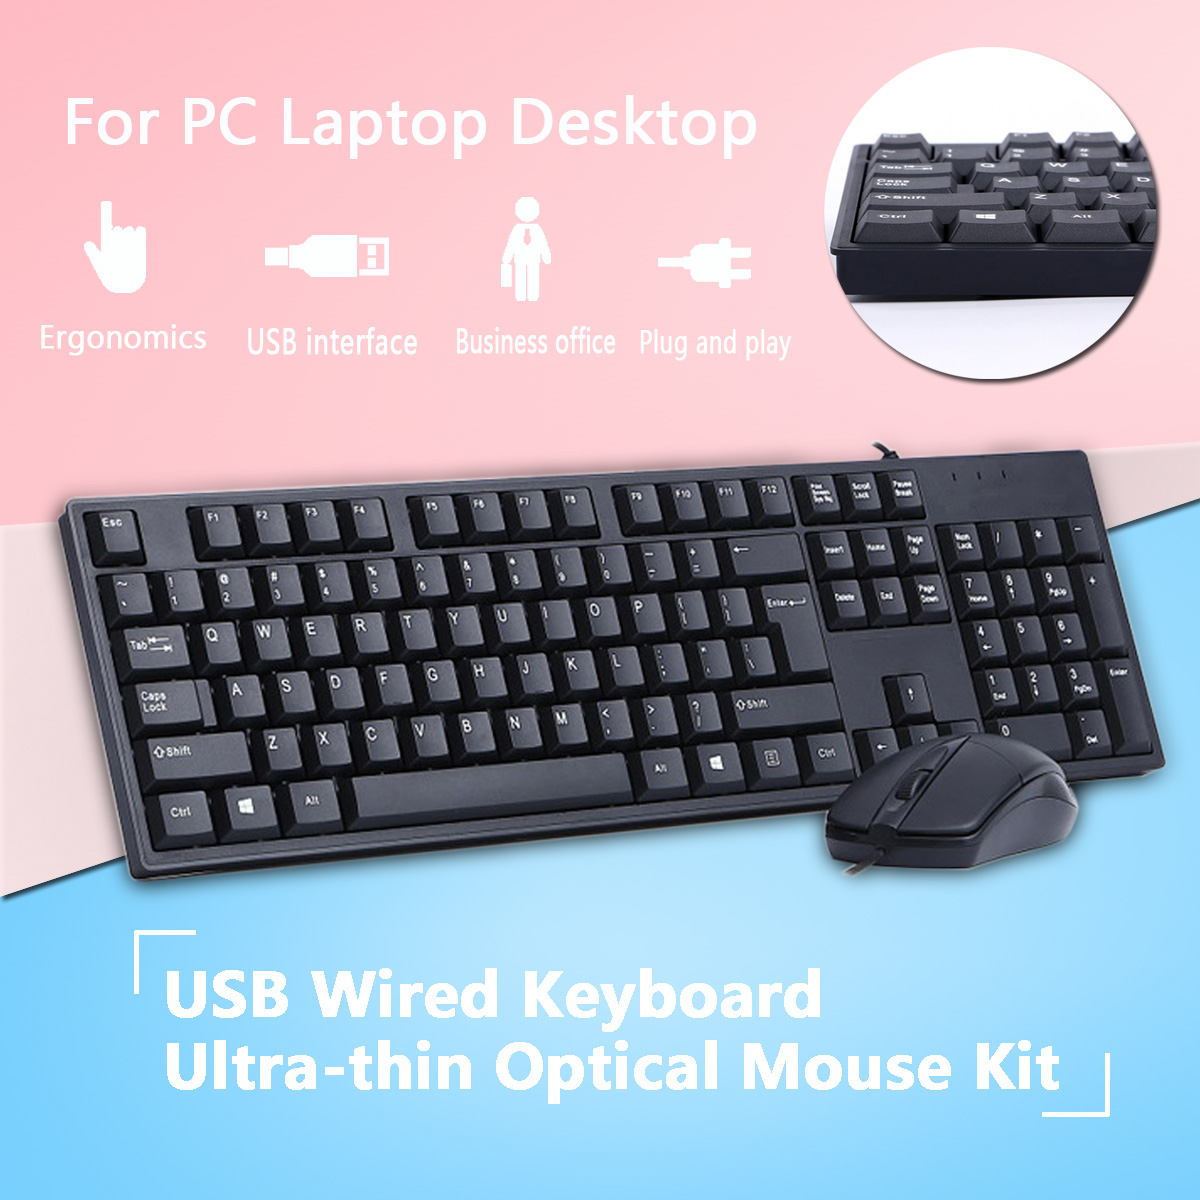 USB Wired Keyboard Ultra-thin Optical Mouse Kit 104 Keys Business Office Keyboards For PC Laptop Desktop